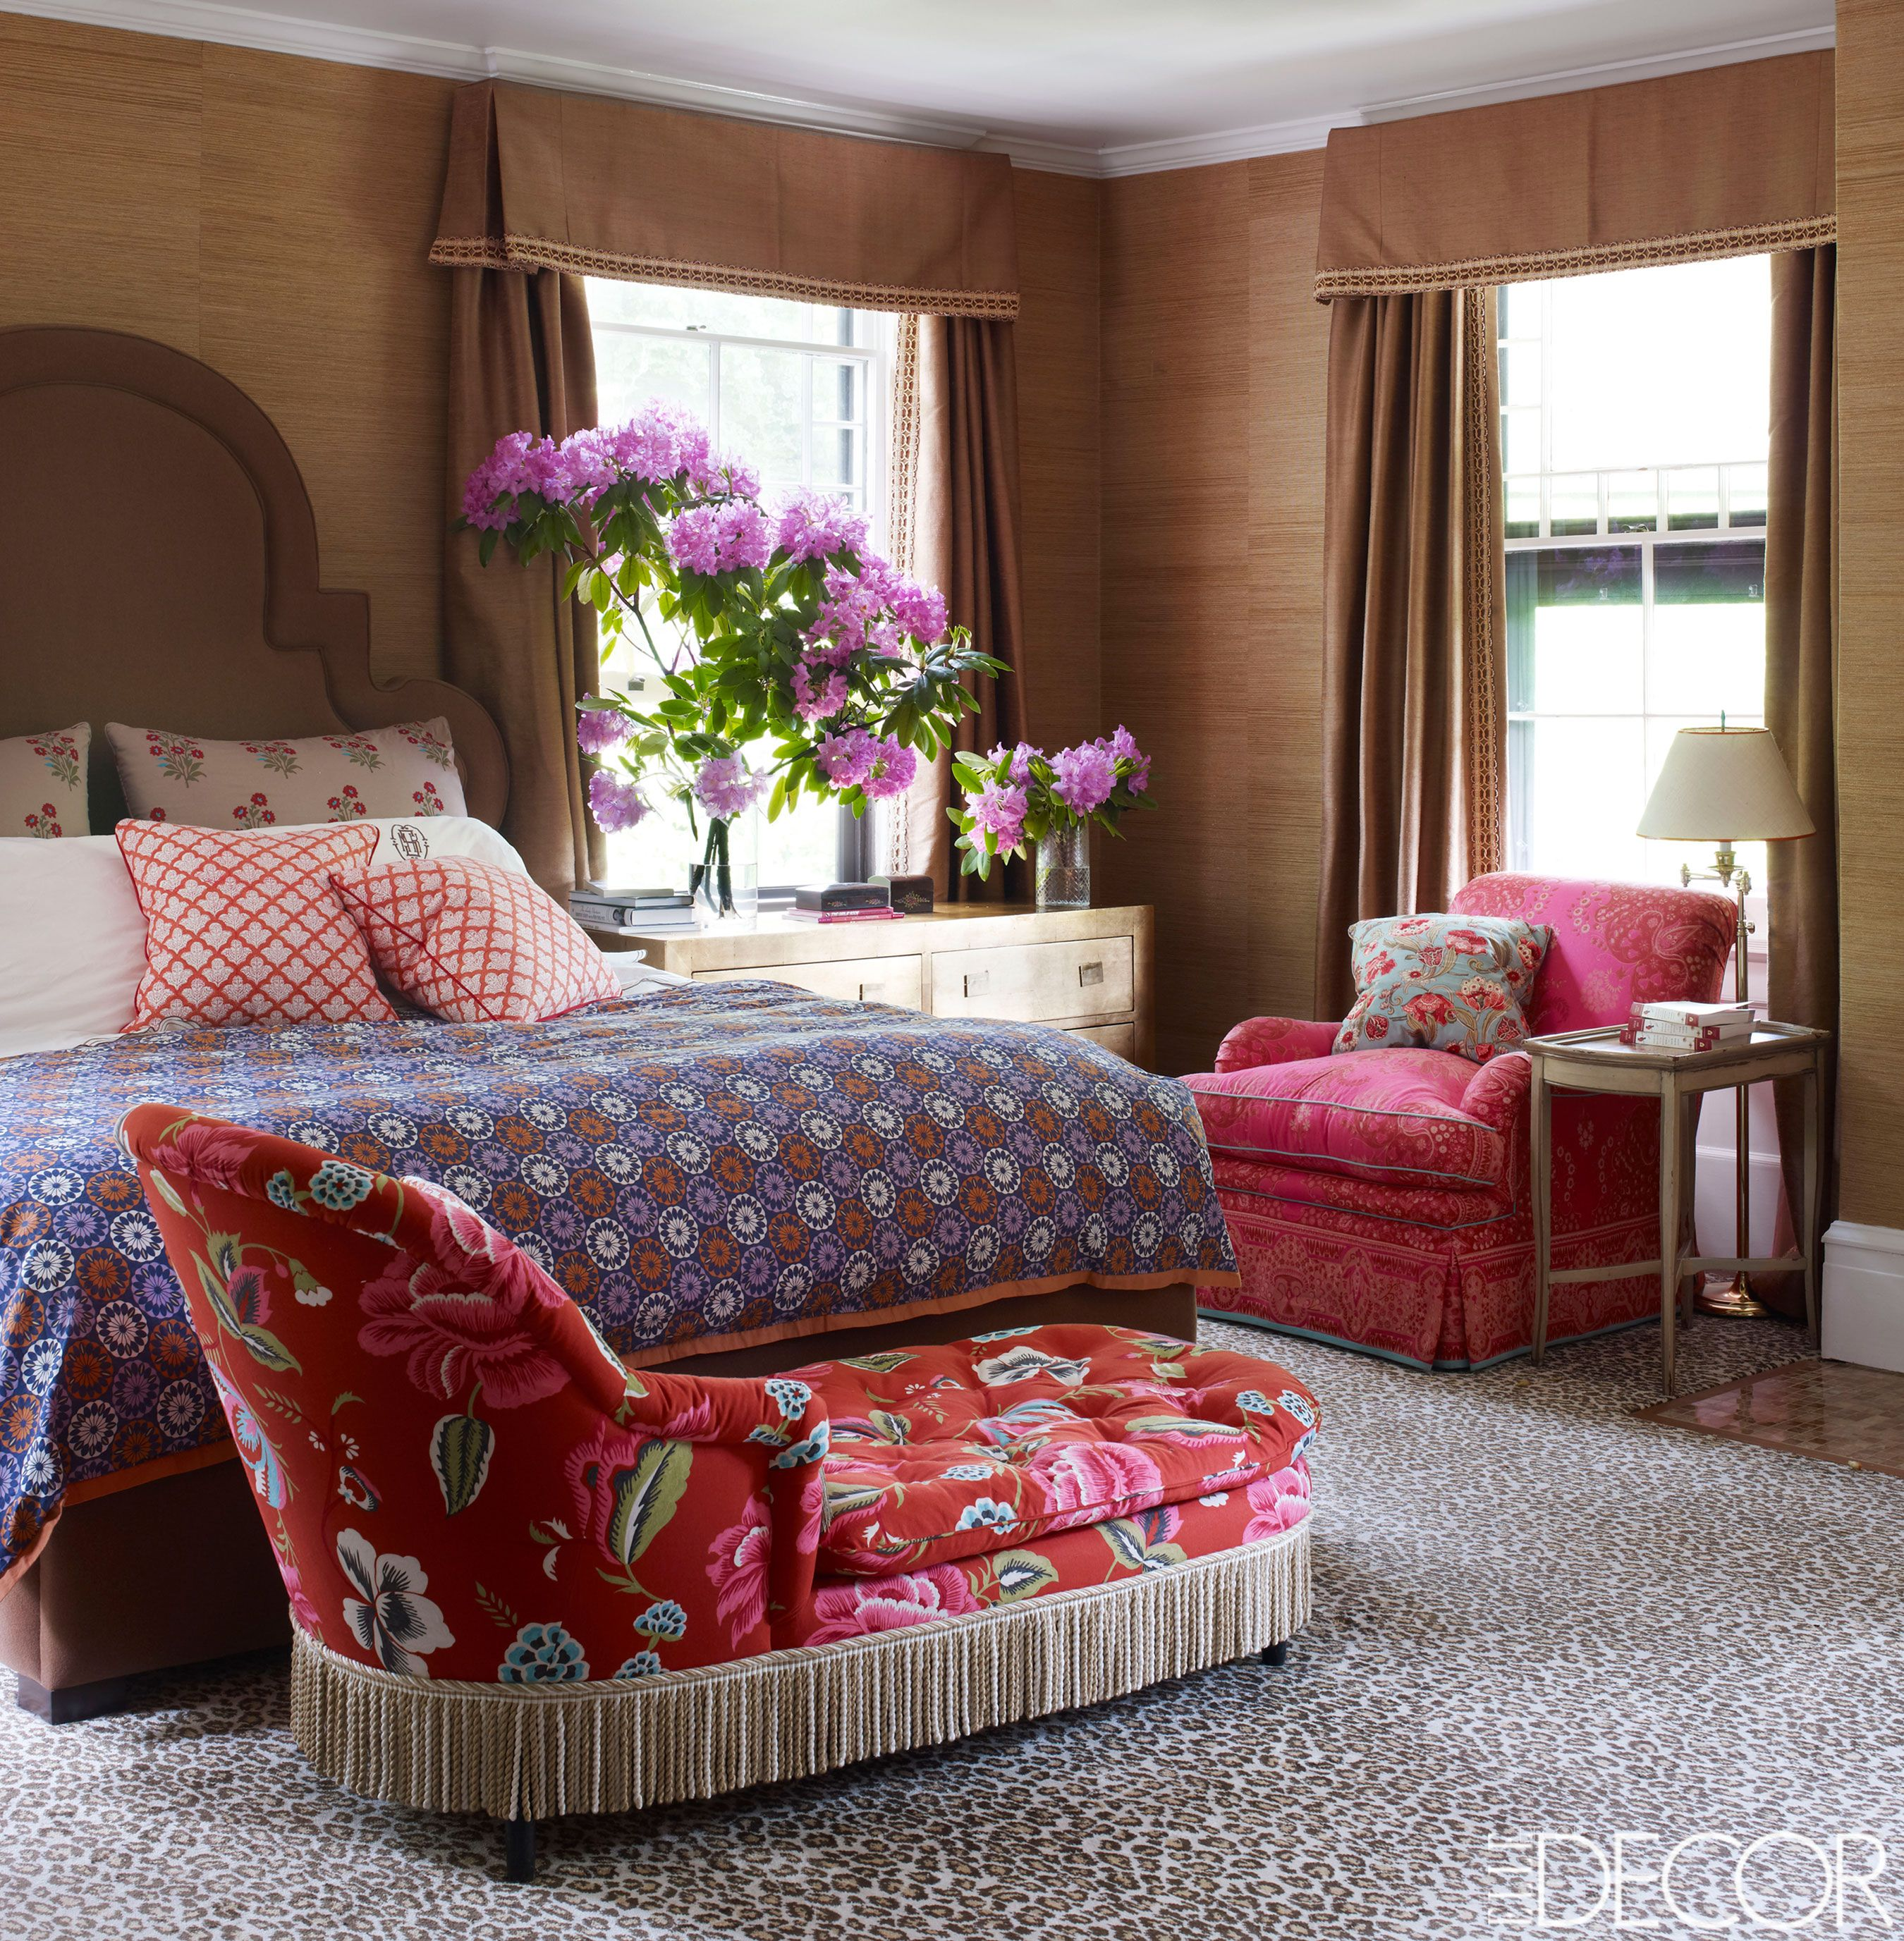 . Floral Patterns   Decorating with Flowers